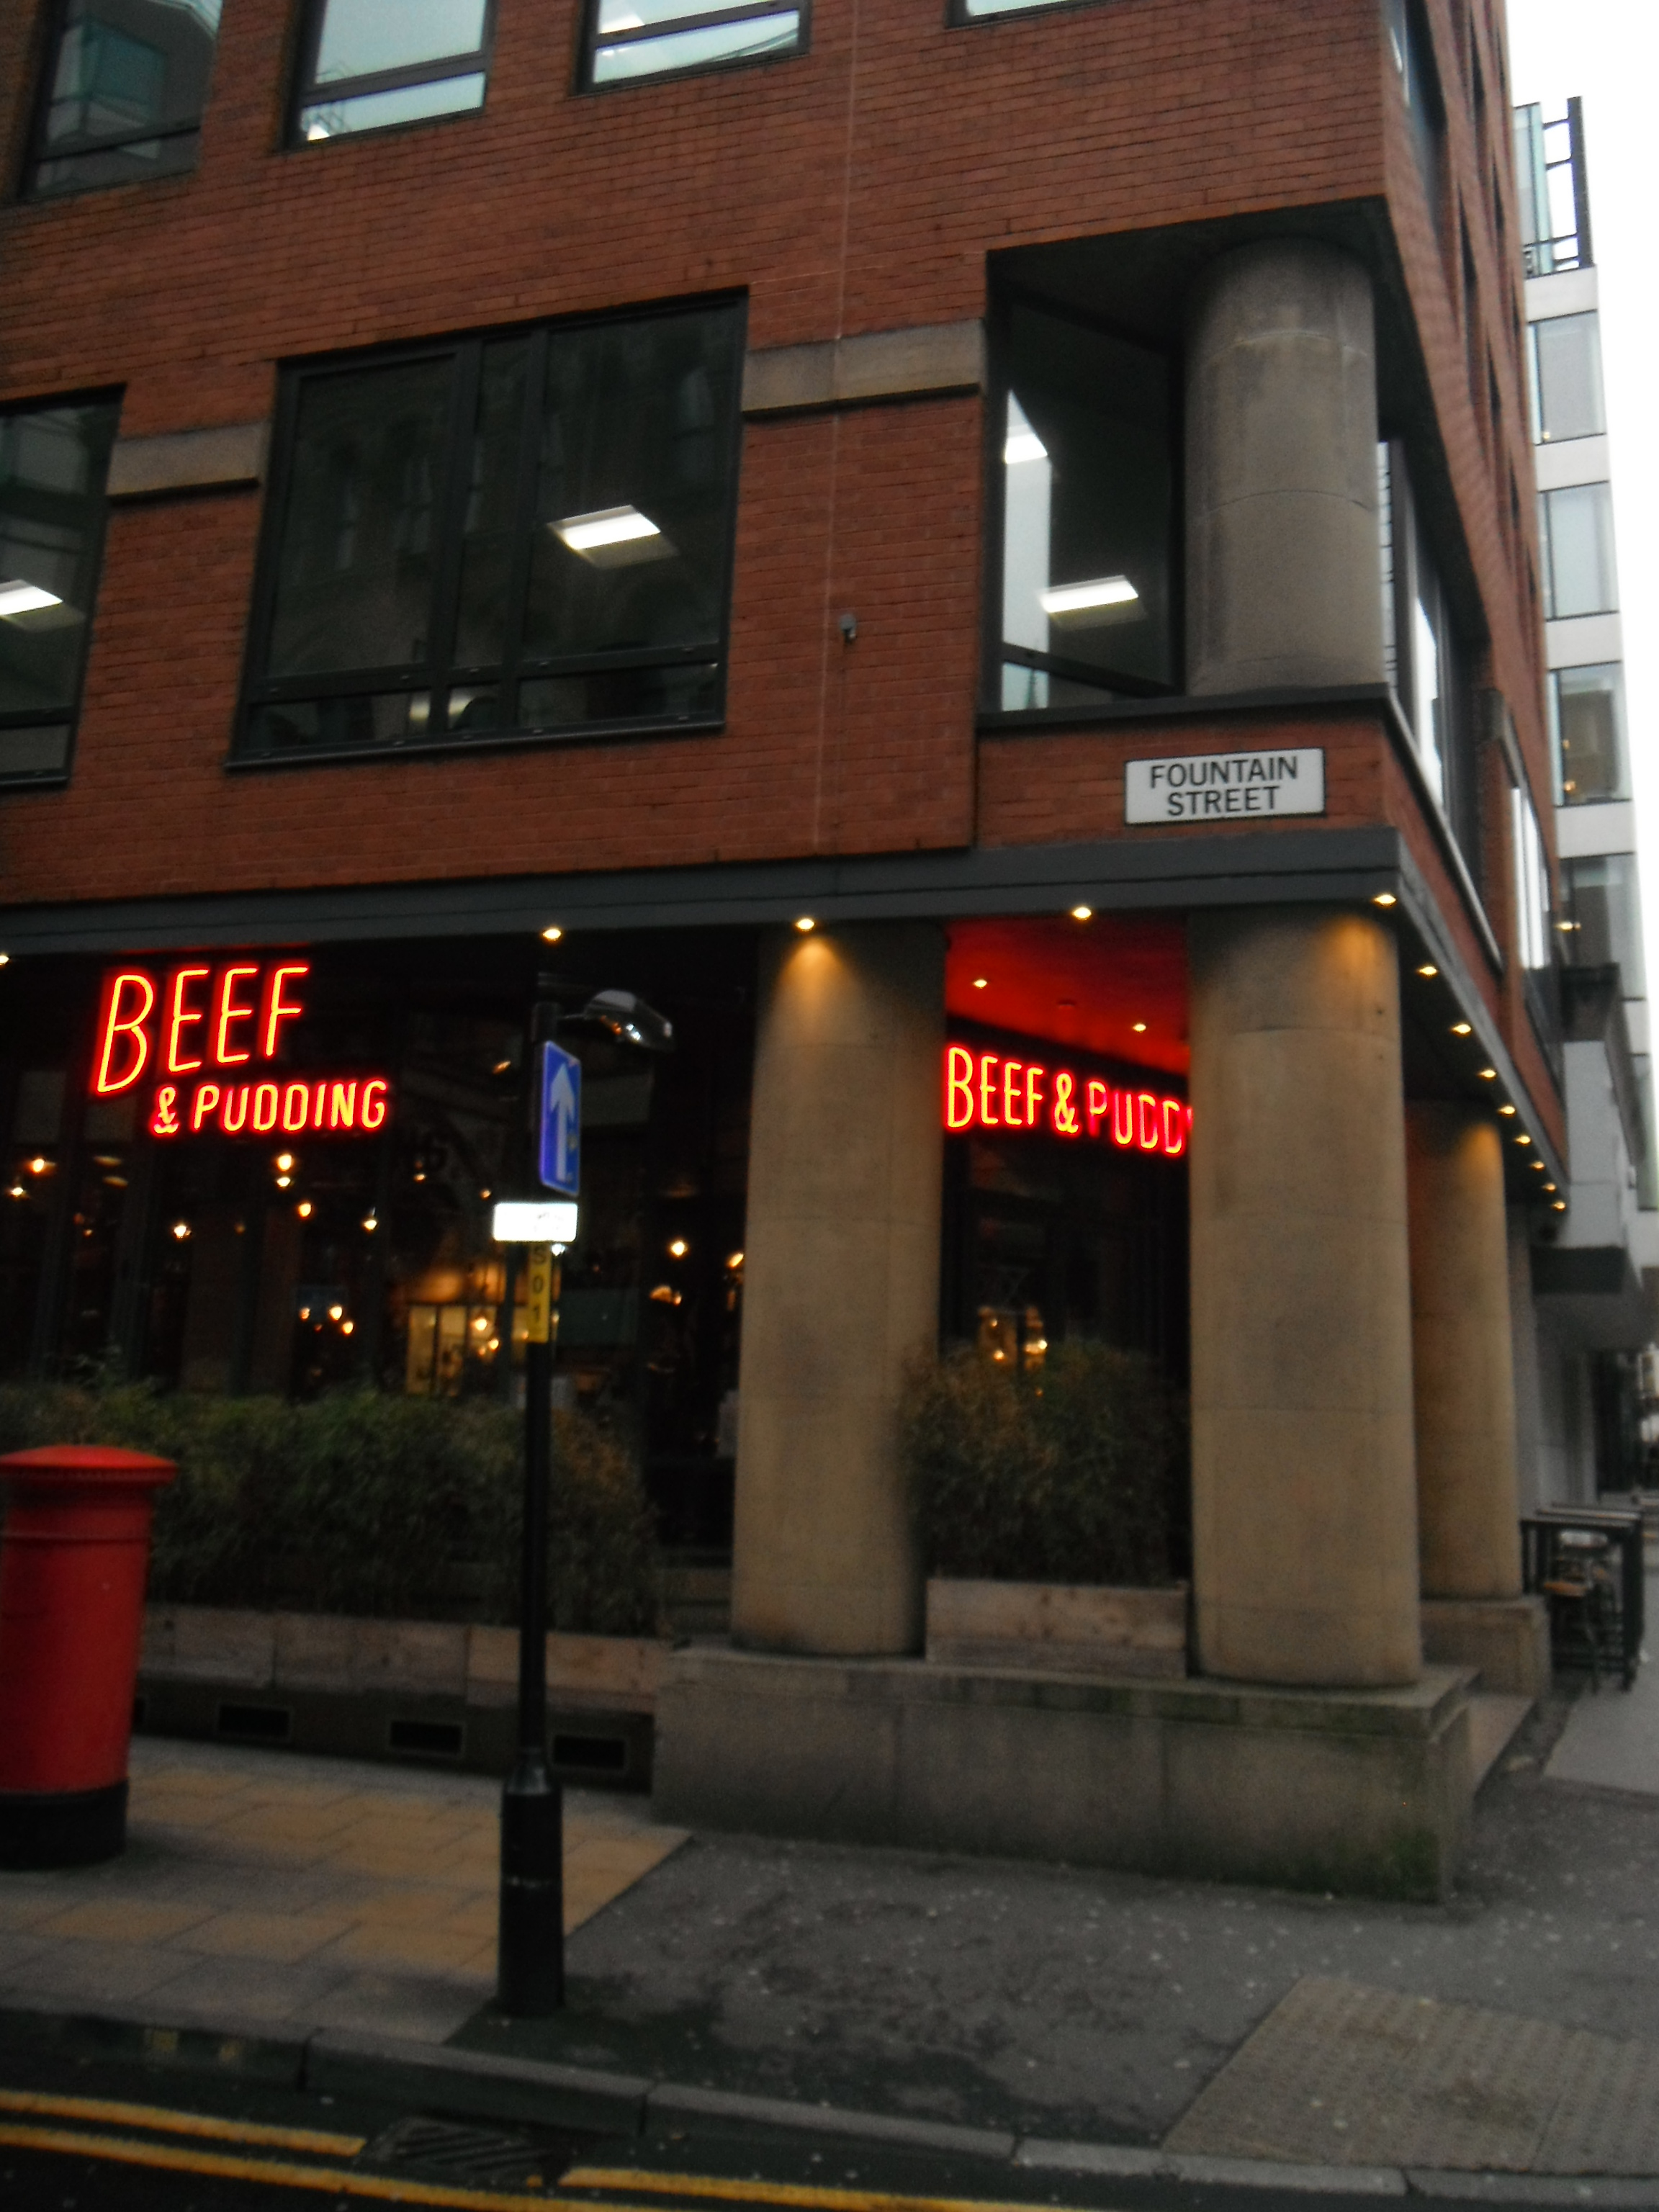 Photo taken by me – The Beef & Pudding bar, Manchester